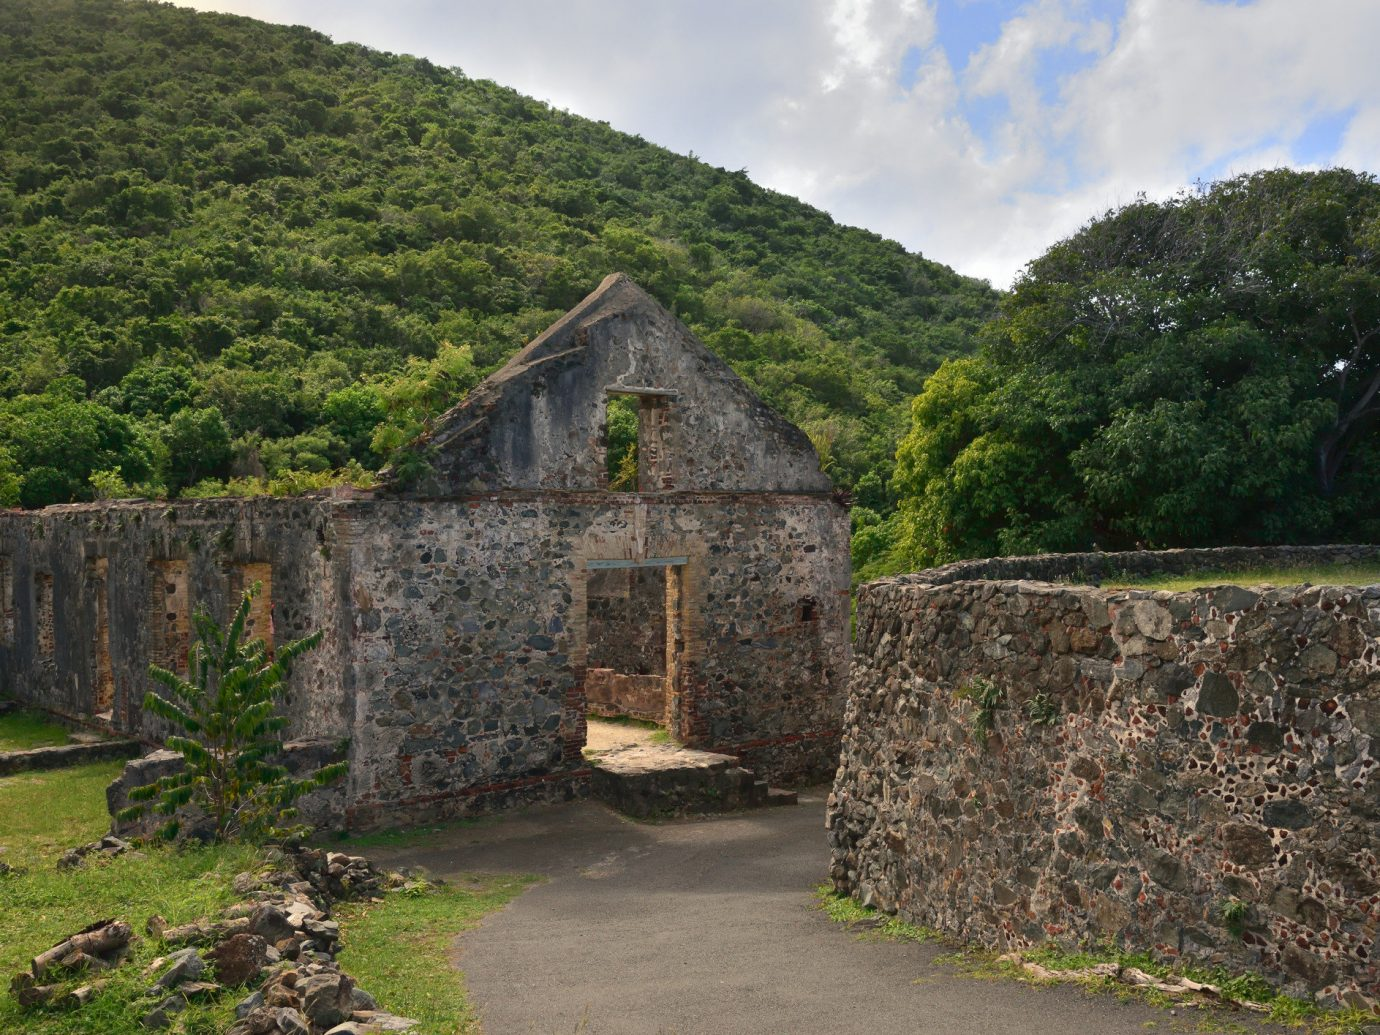 Trip Ideas outdoor grass tree highland building Ruins Village stone rural area hill estate fortification monastery ancient history chapel place of worship old